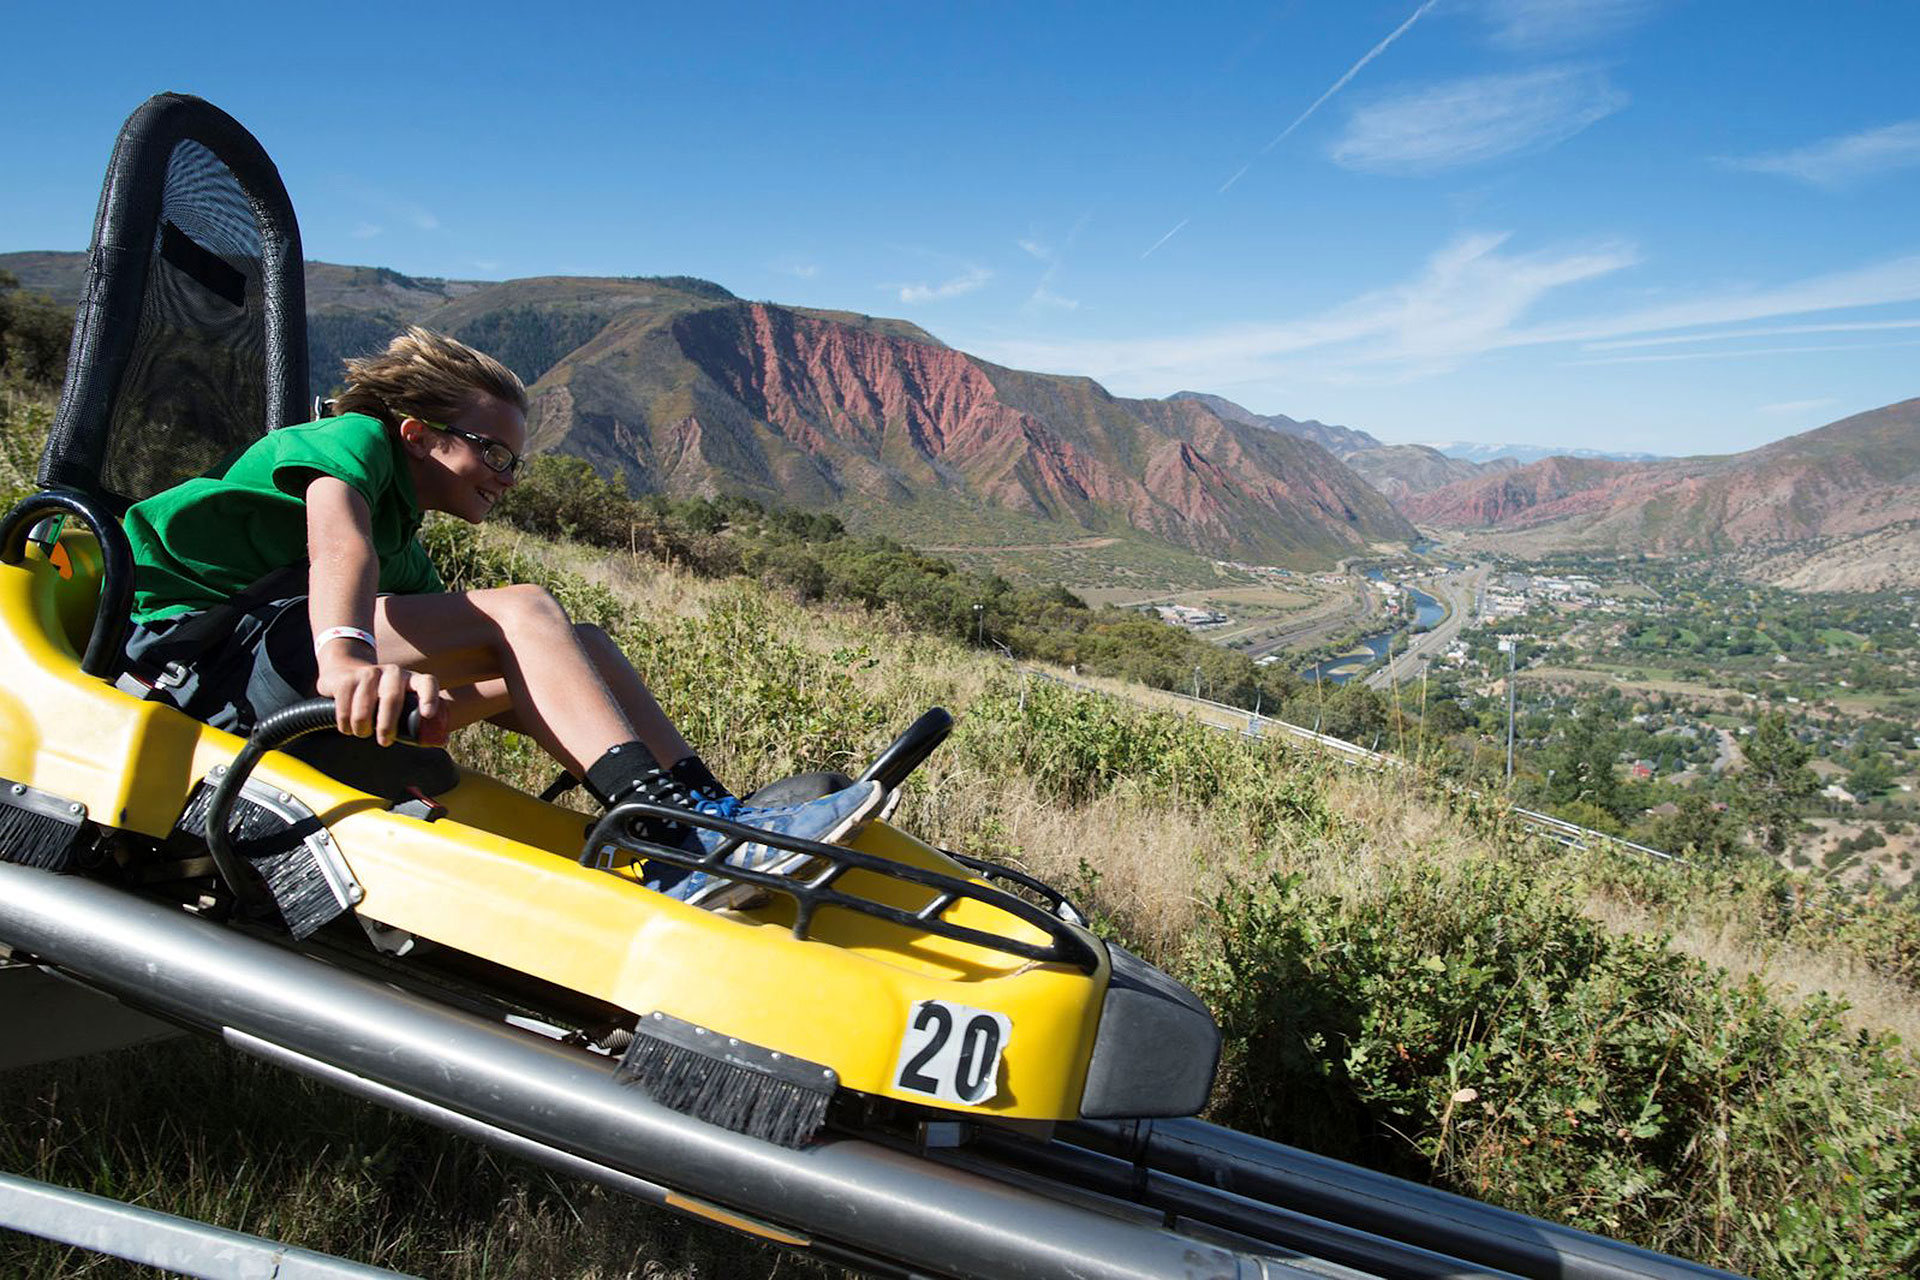 Glenwood Caverns Adventure Park; Courtesy of Glenwood Caverns Adventure Park